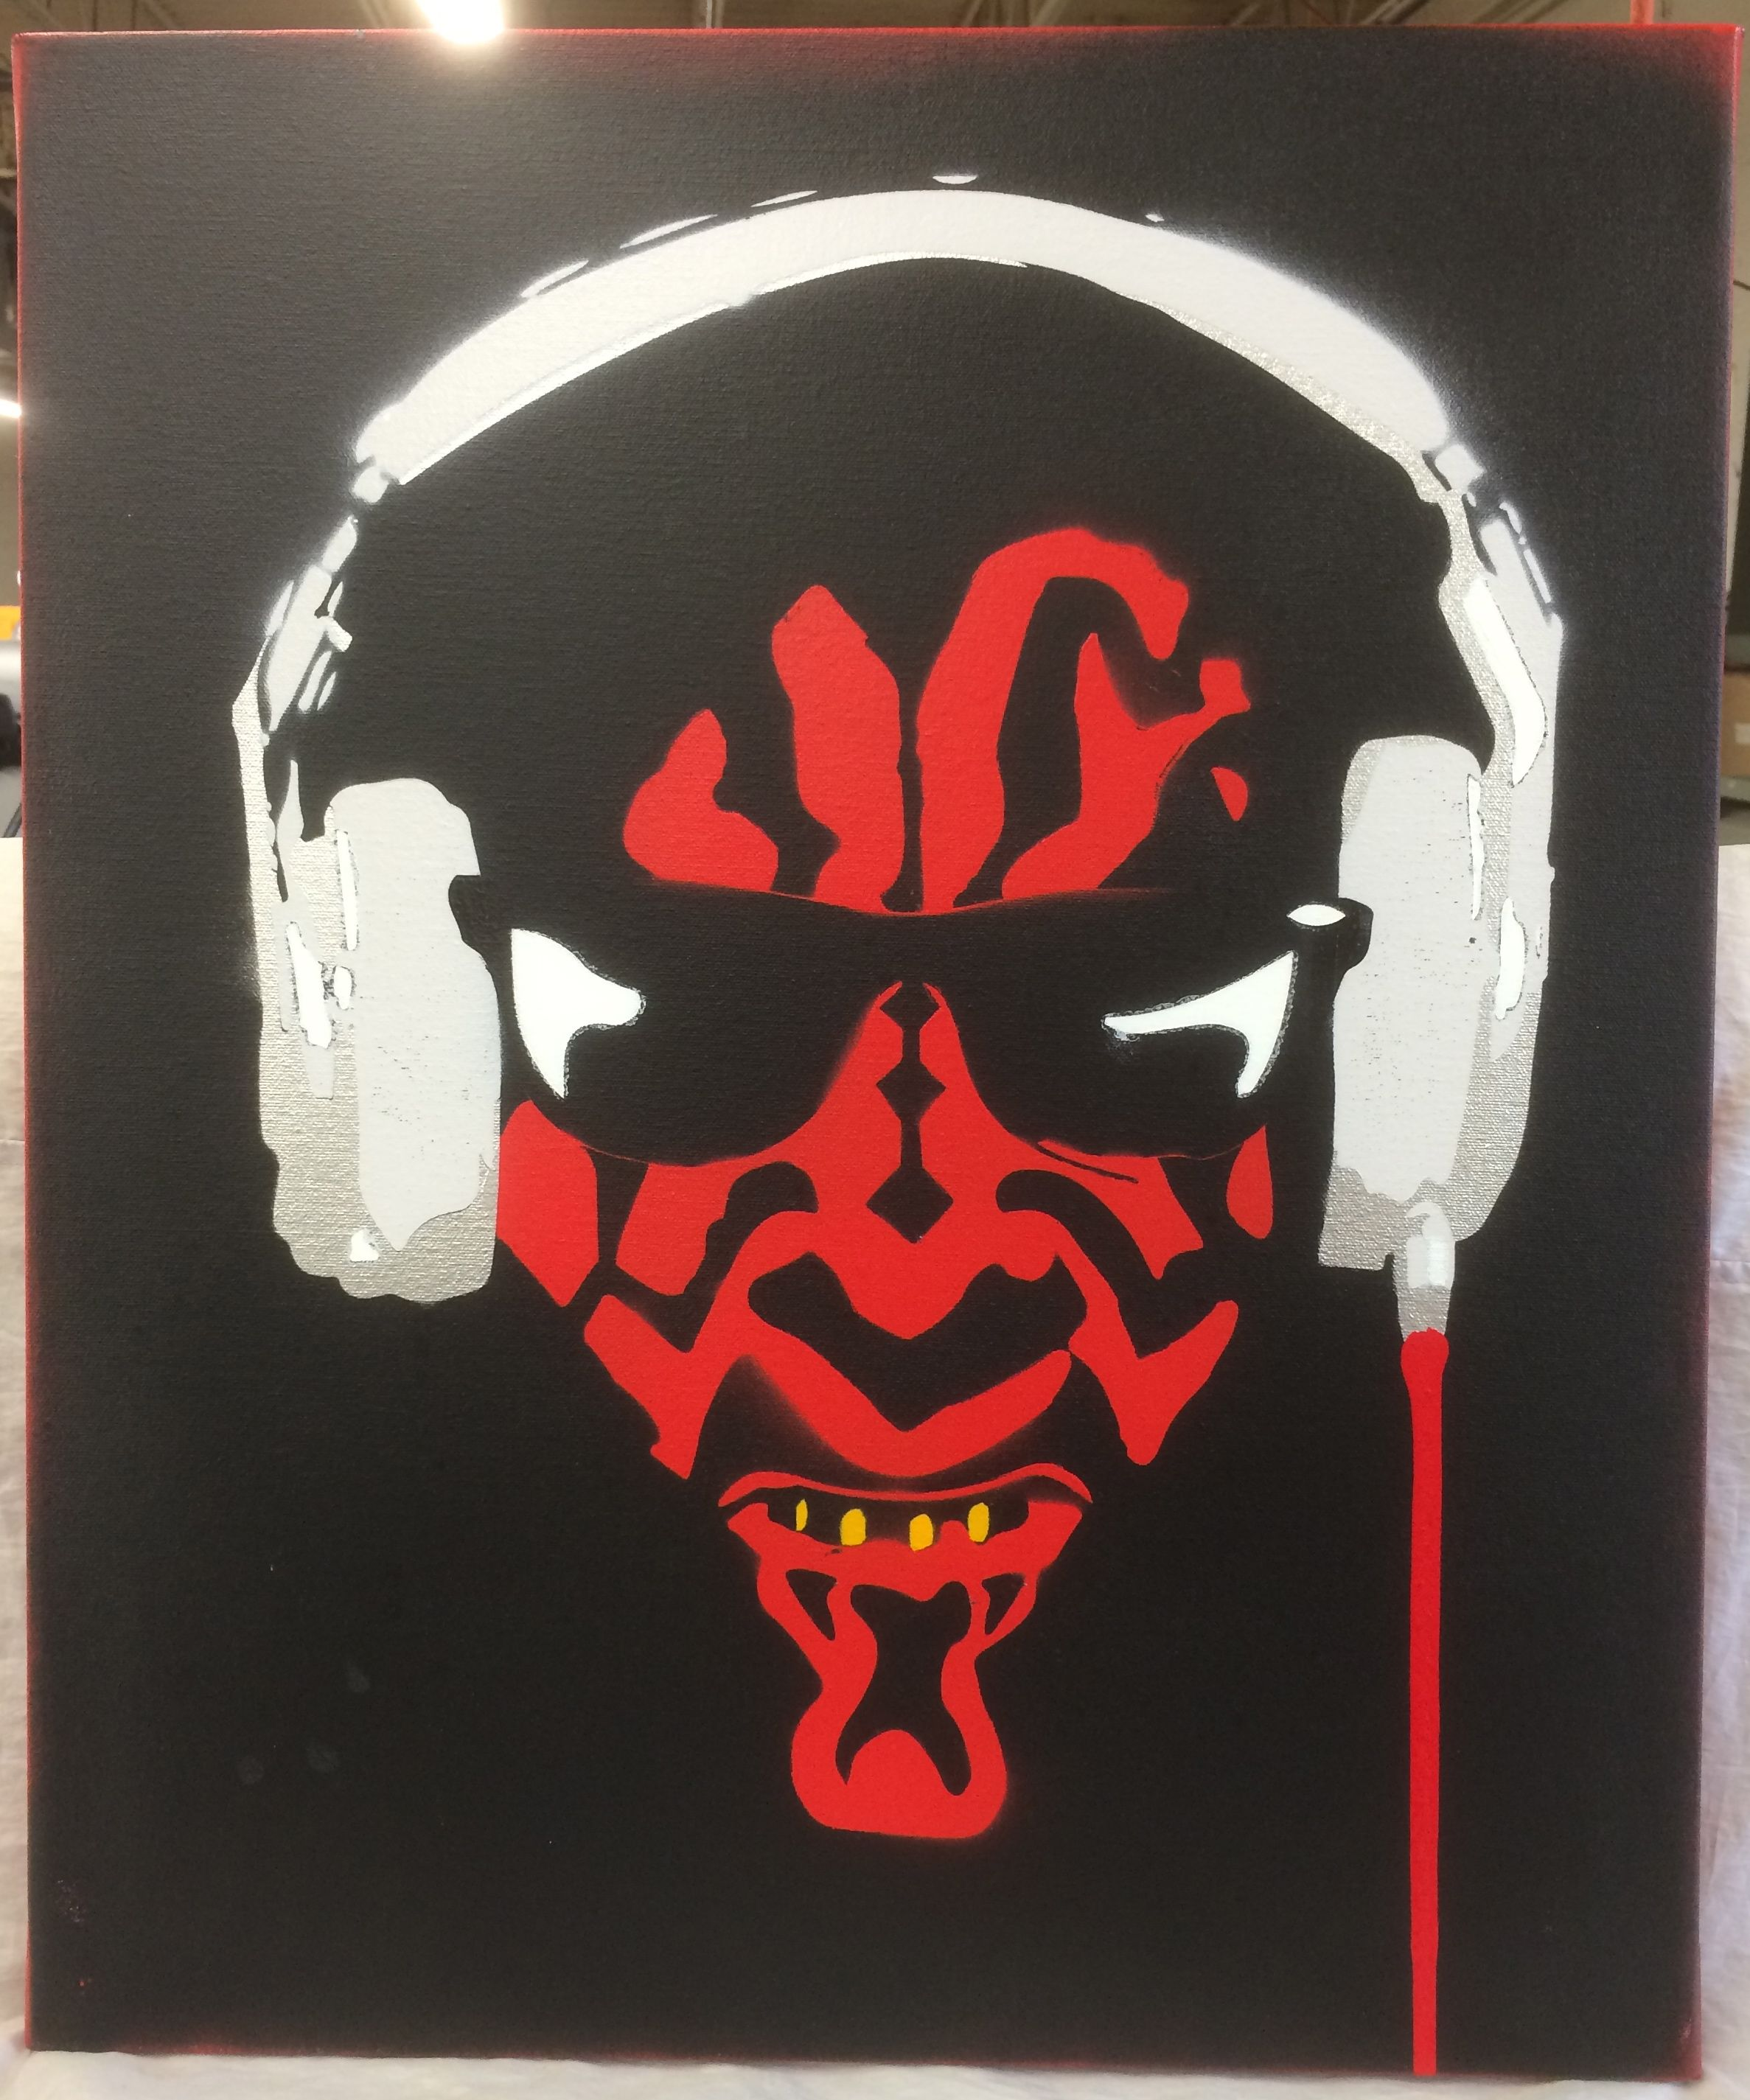 Darth Maul Stencil Art Acrylic Spray Paint And Brush Painted On Stretched Canvas 3 4 Wood Frame 20 X 24